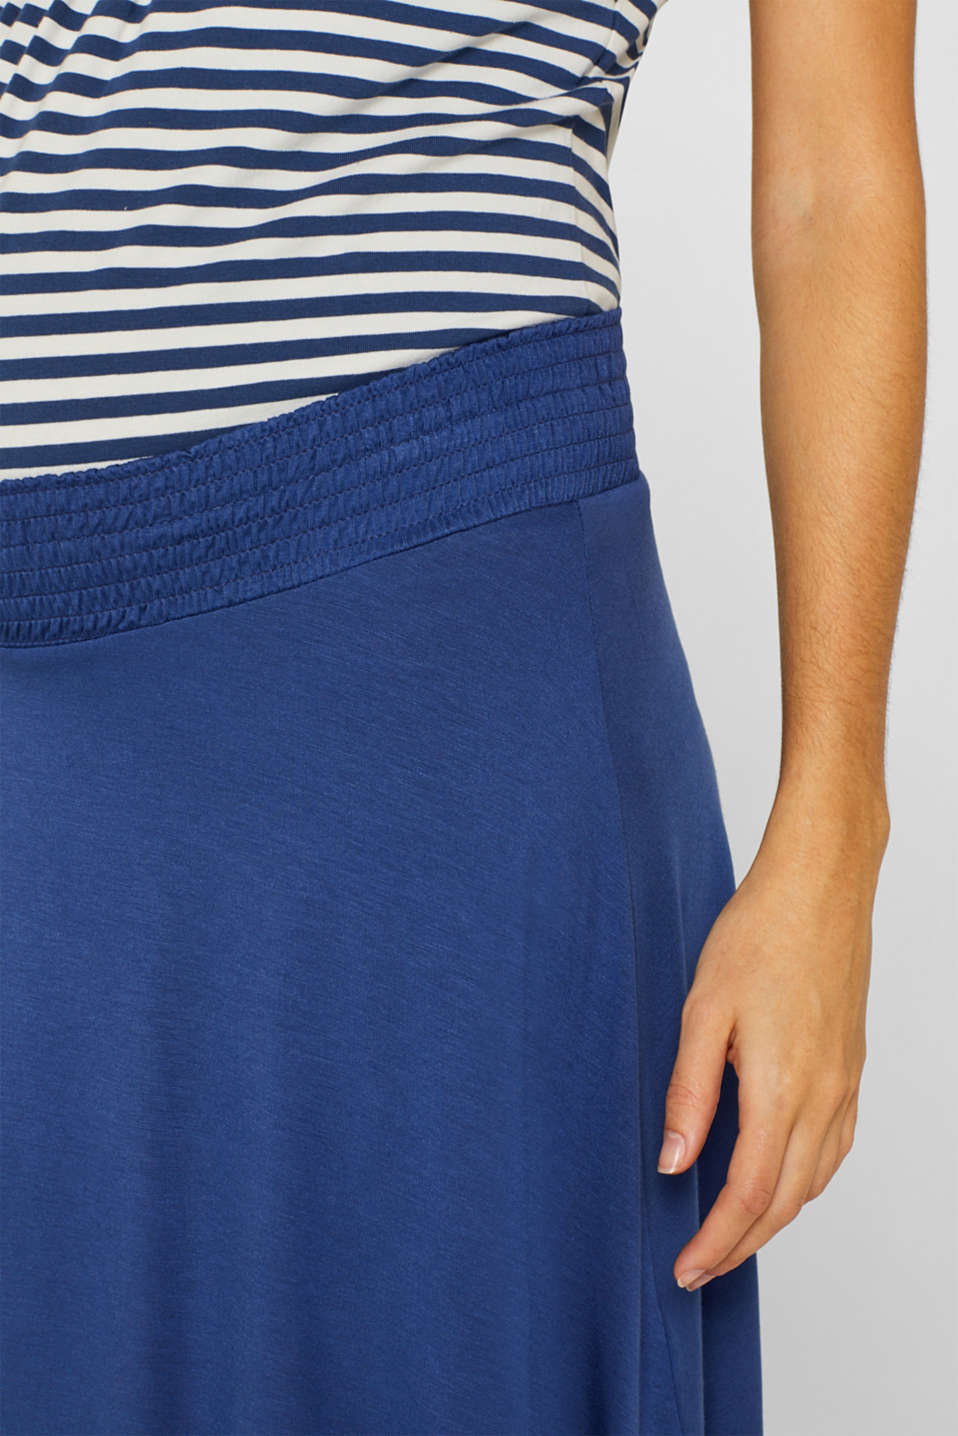 Stretch jersey skirt with a wide elasticated waistband, LCDARK BLUE, detail image number 5